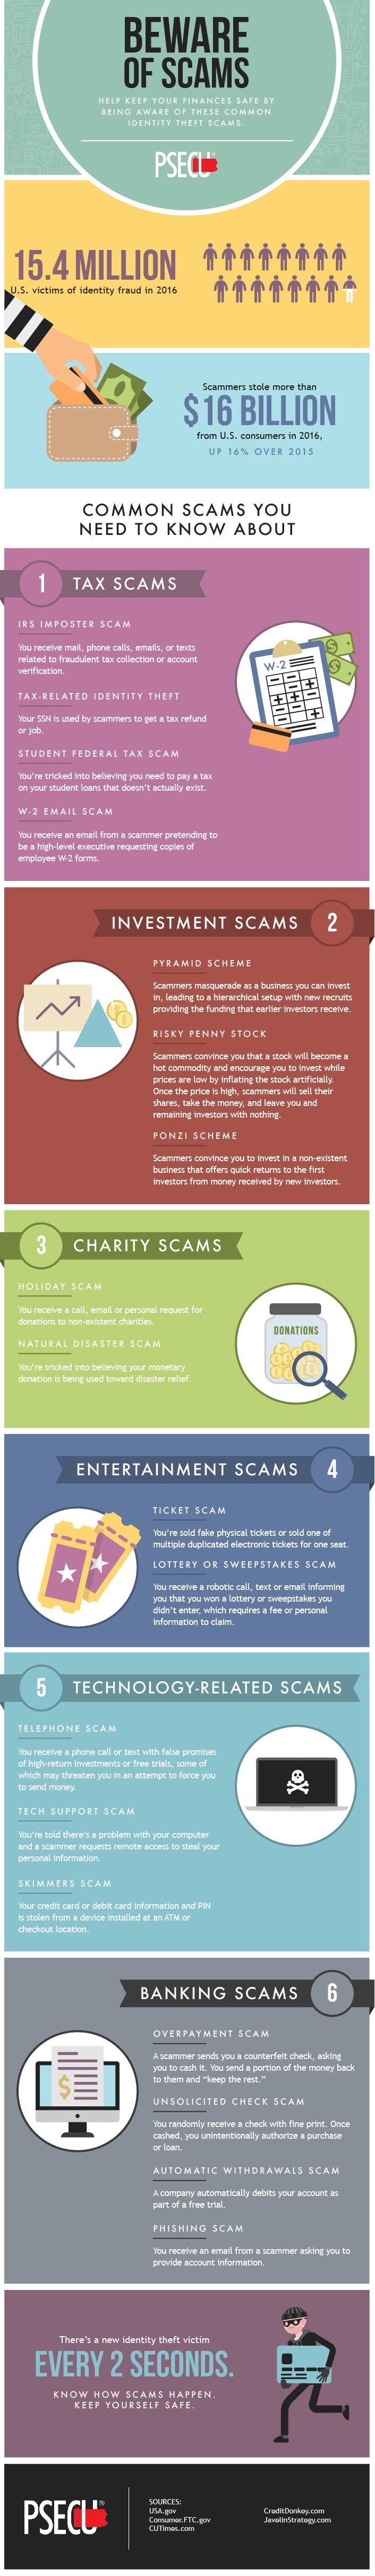 Beware of These Financial and Identity Theft Scams -